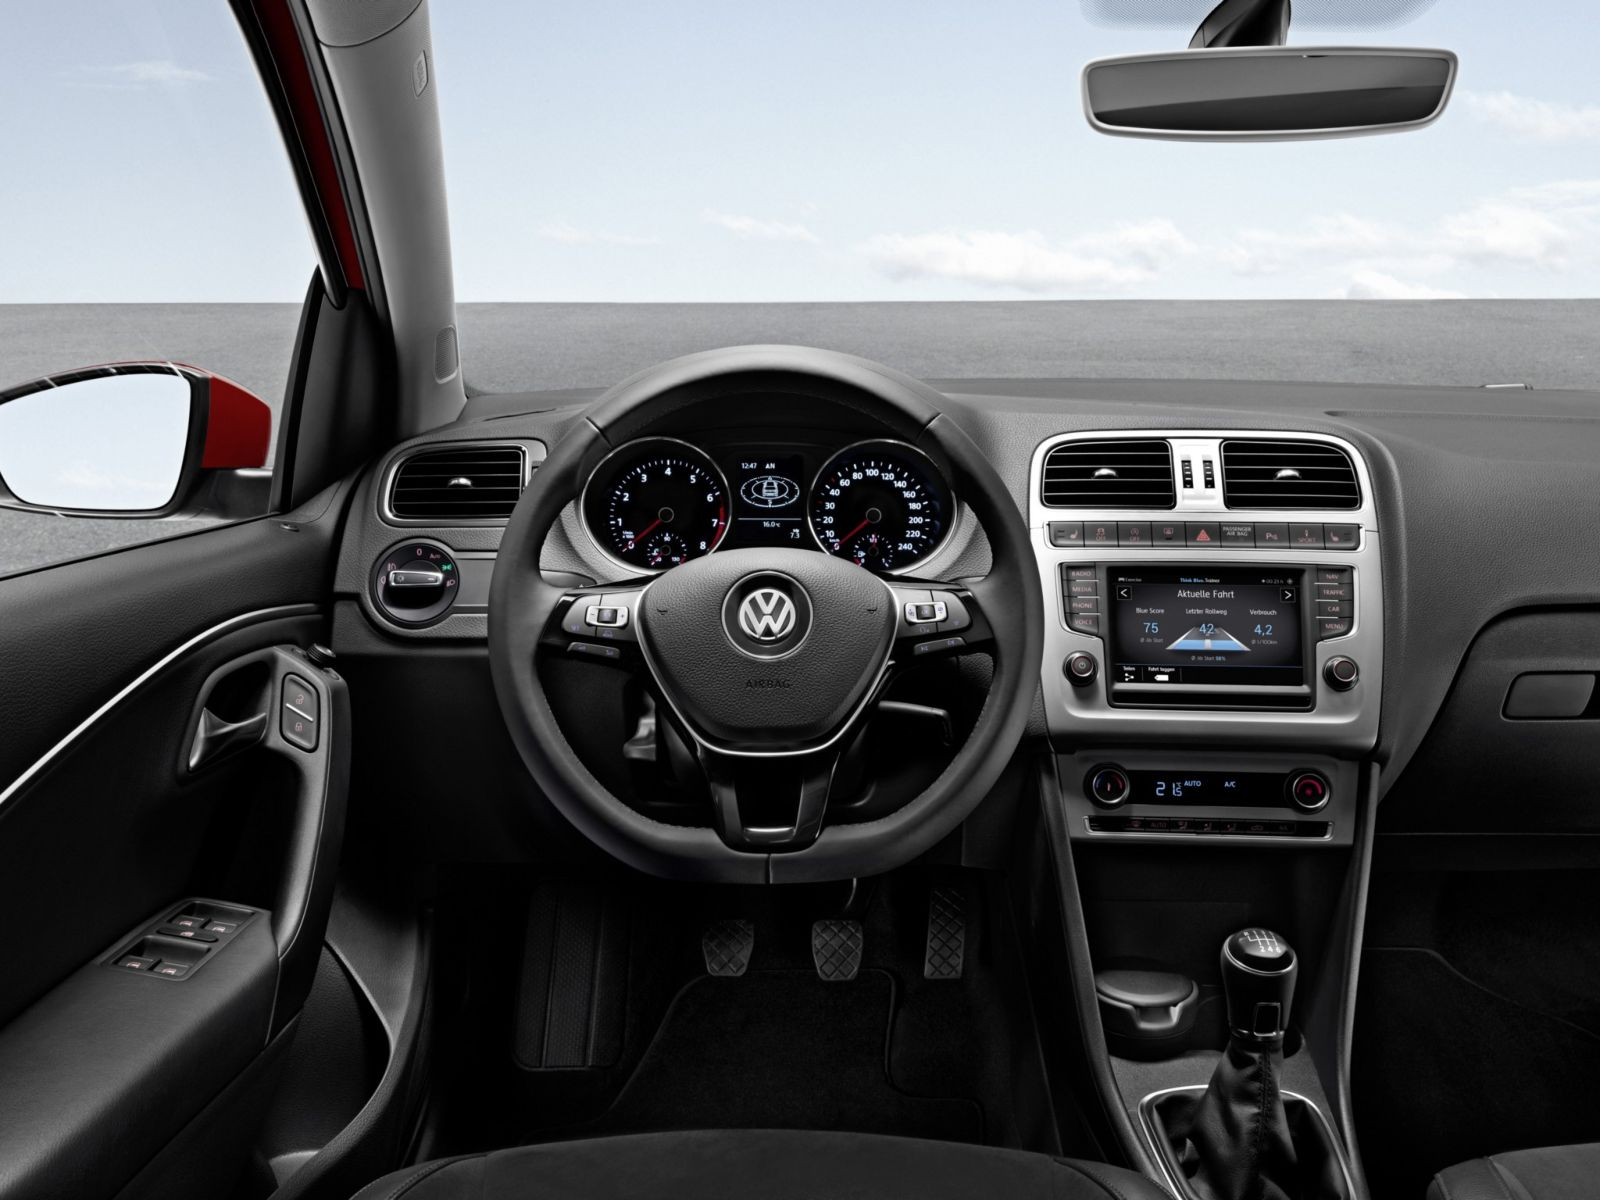 vw polo v 2014 offre moteur compl tement revue. Black Bedroom Furniture Sets. Home Design Ideas